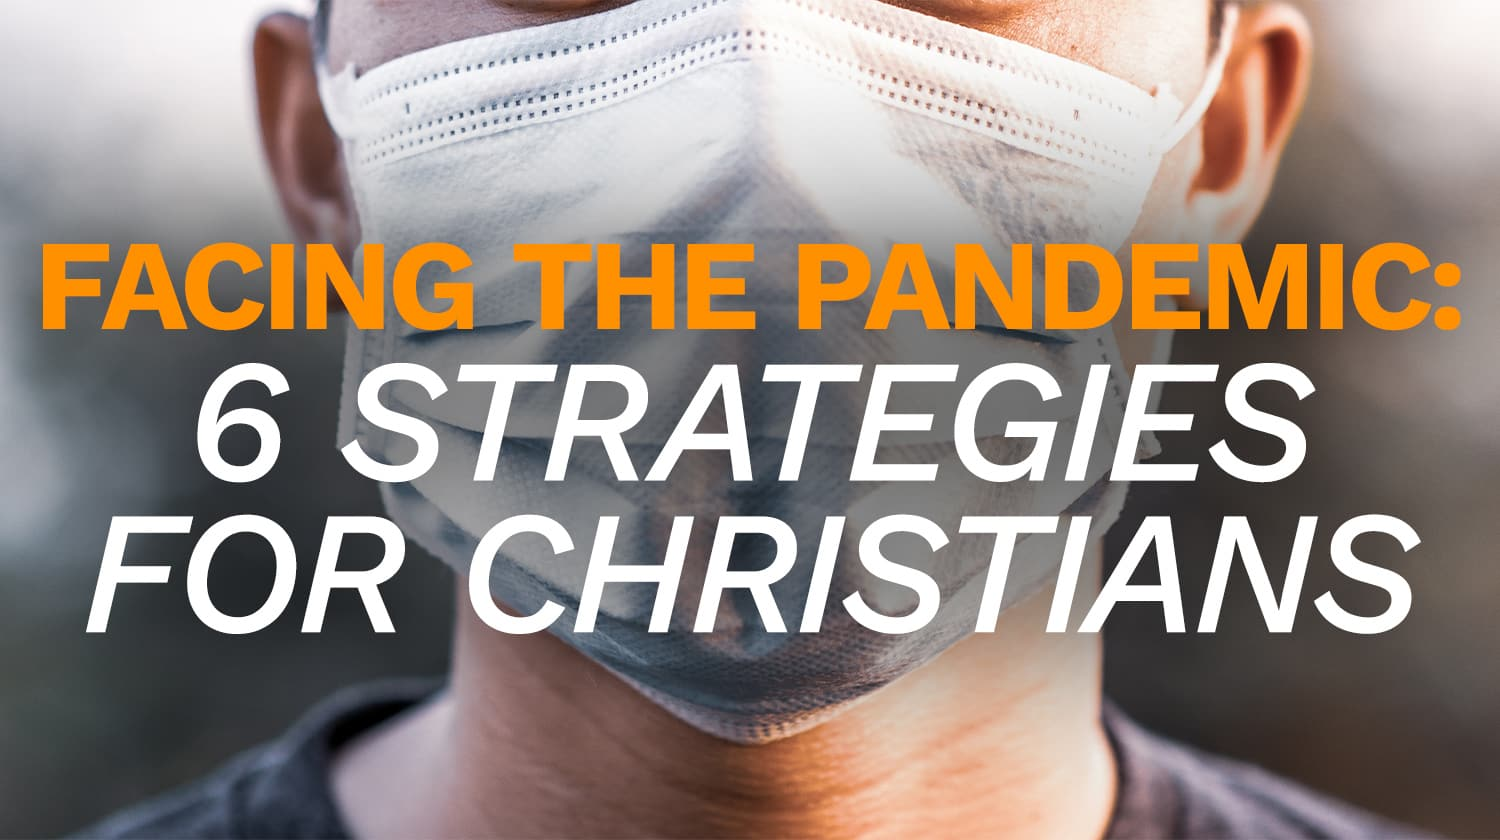 Facing the Pandemic: 6 Strategies for Christians